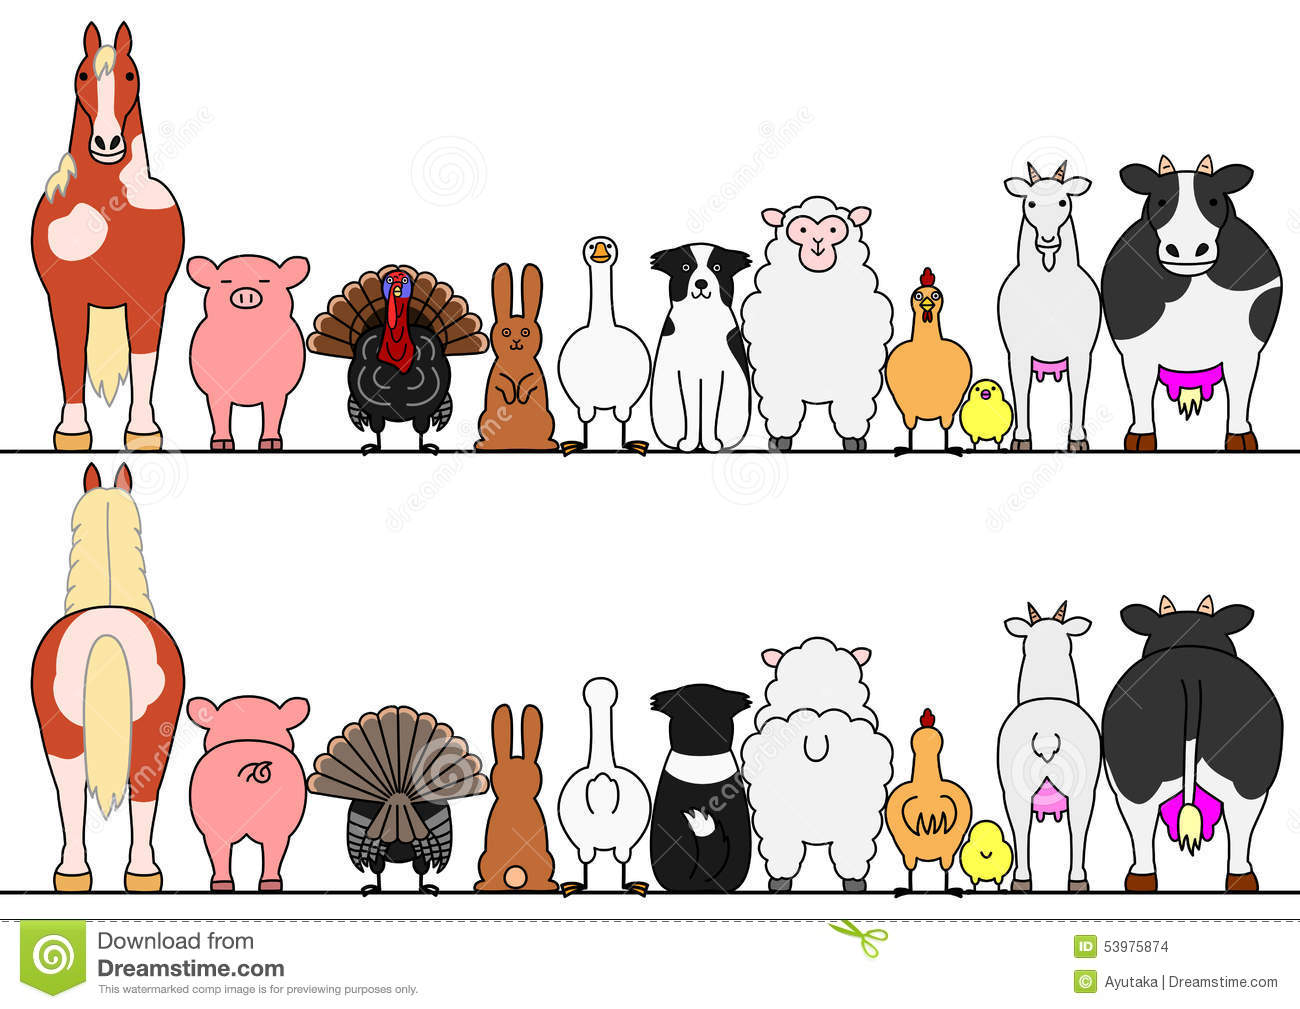 Farm animals in a row, front and back